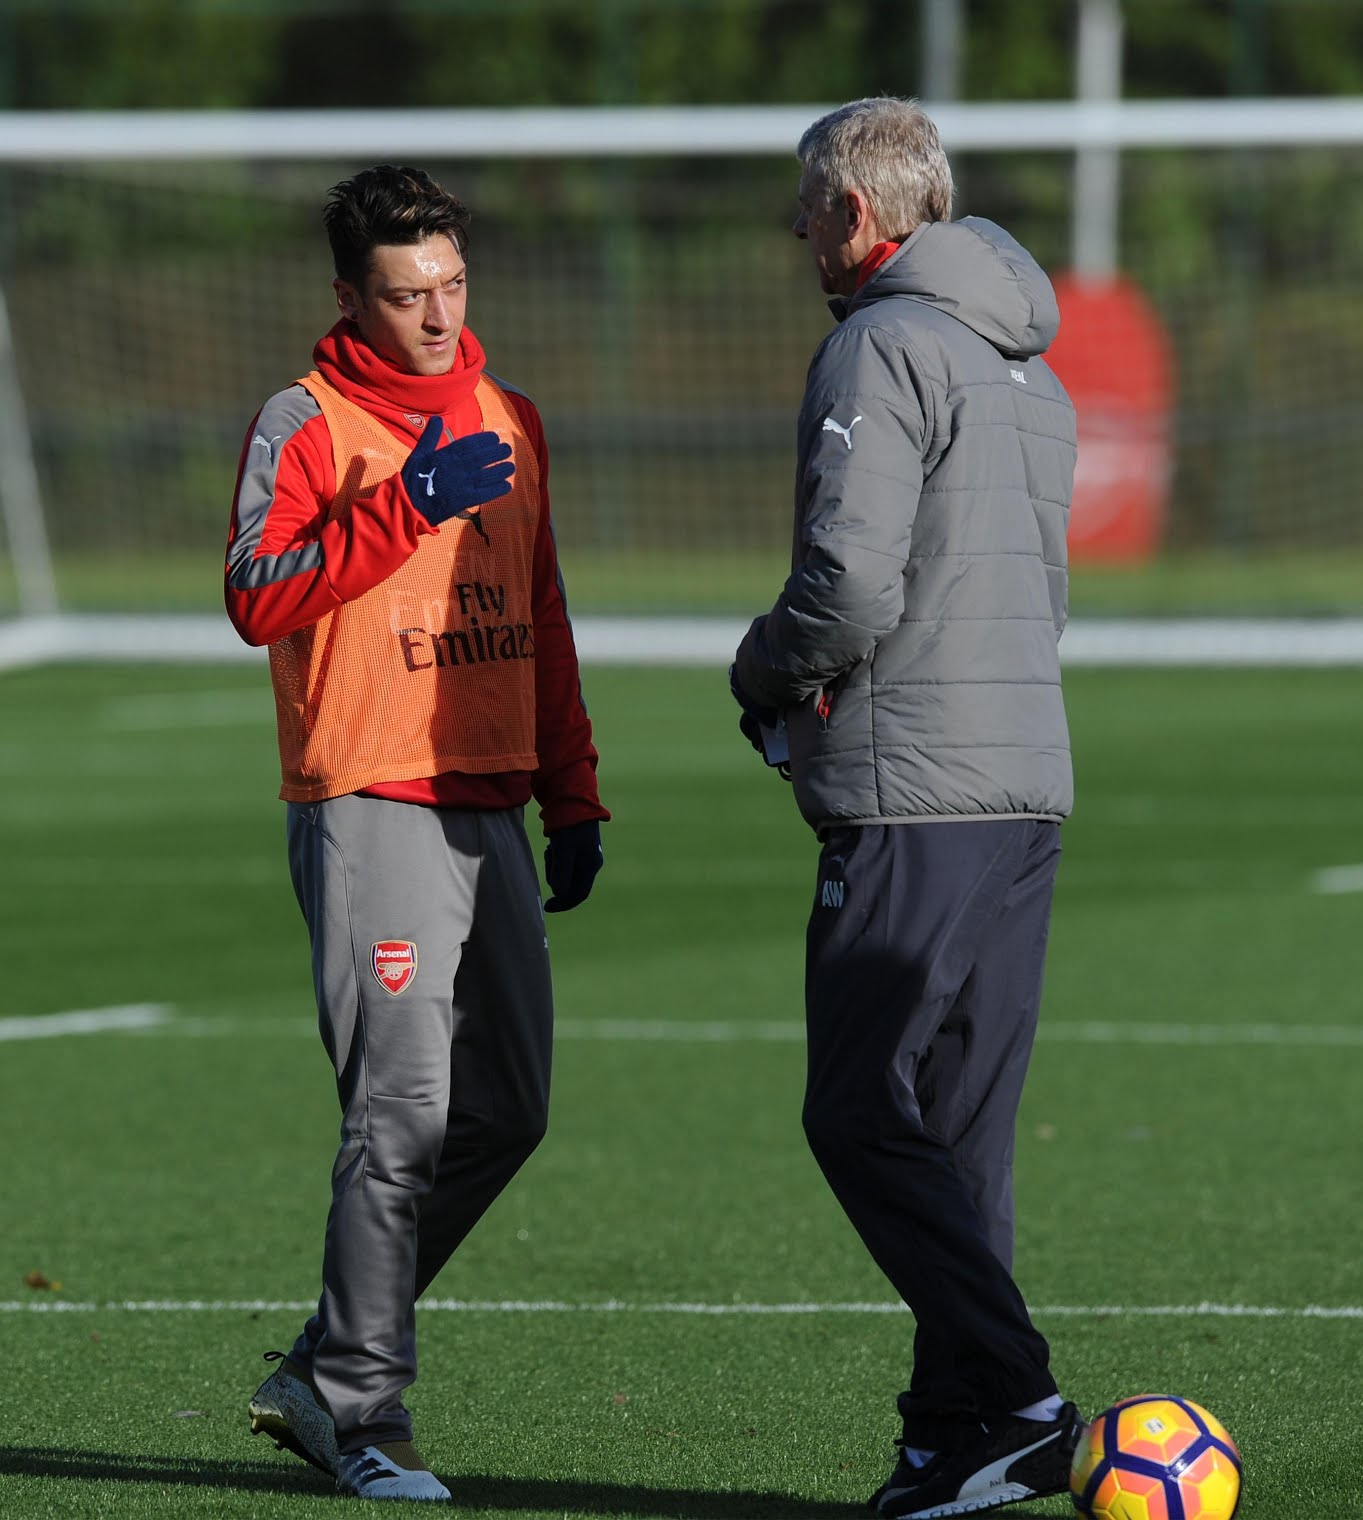 Ozil has pointed that it was Wenger who signed him, and showed he wanted him at Arsenal